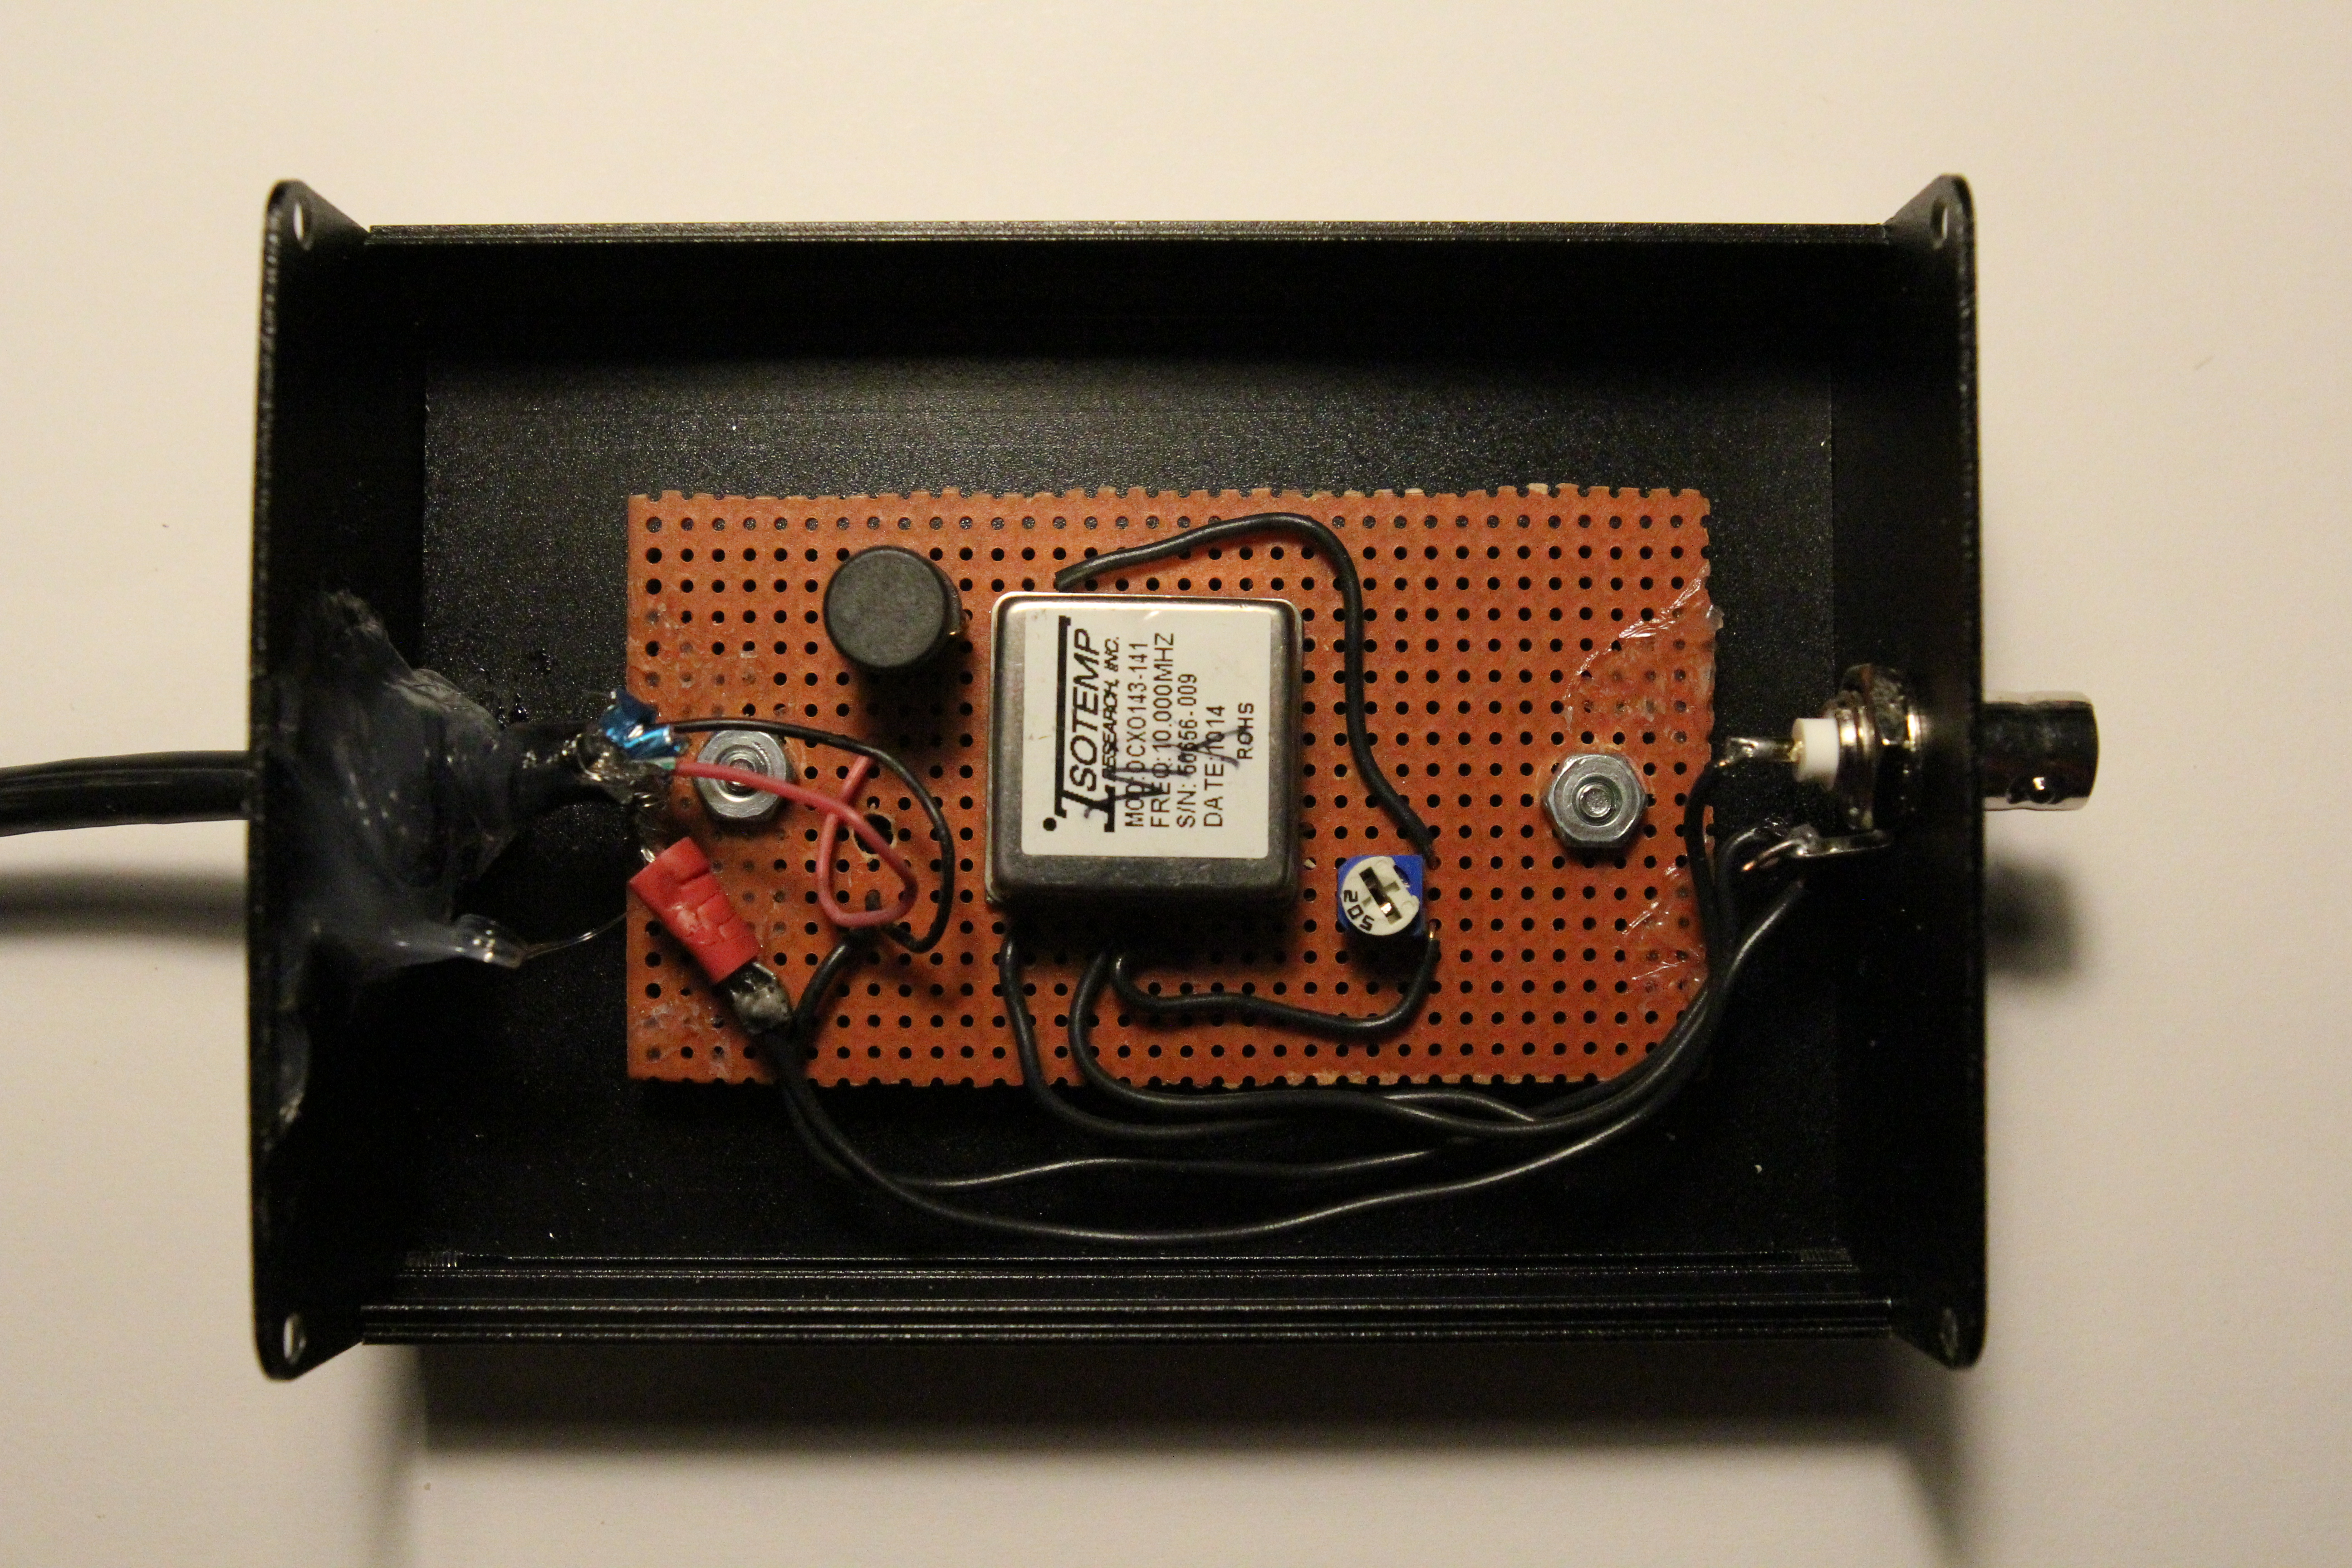 Simple 10 MHz Frequency Standard on